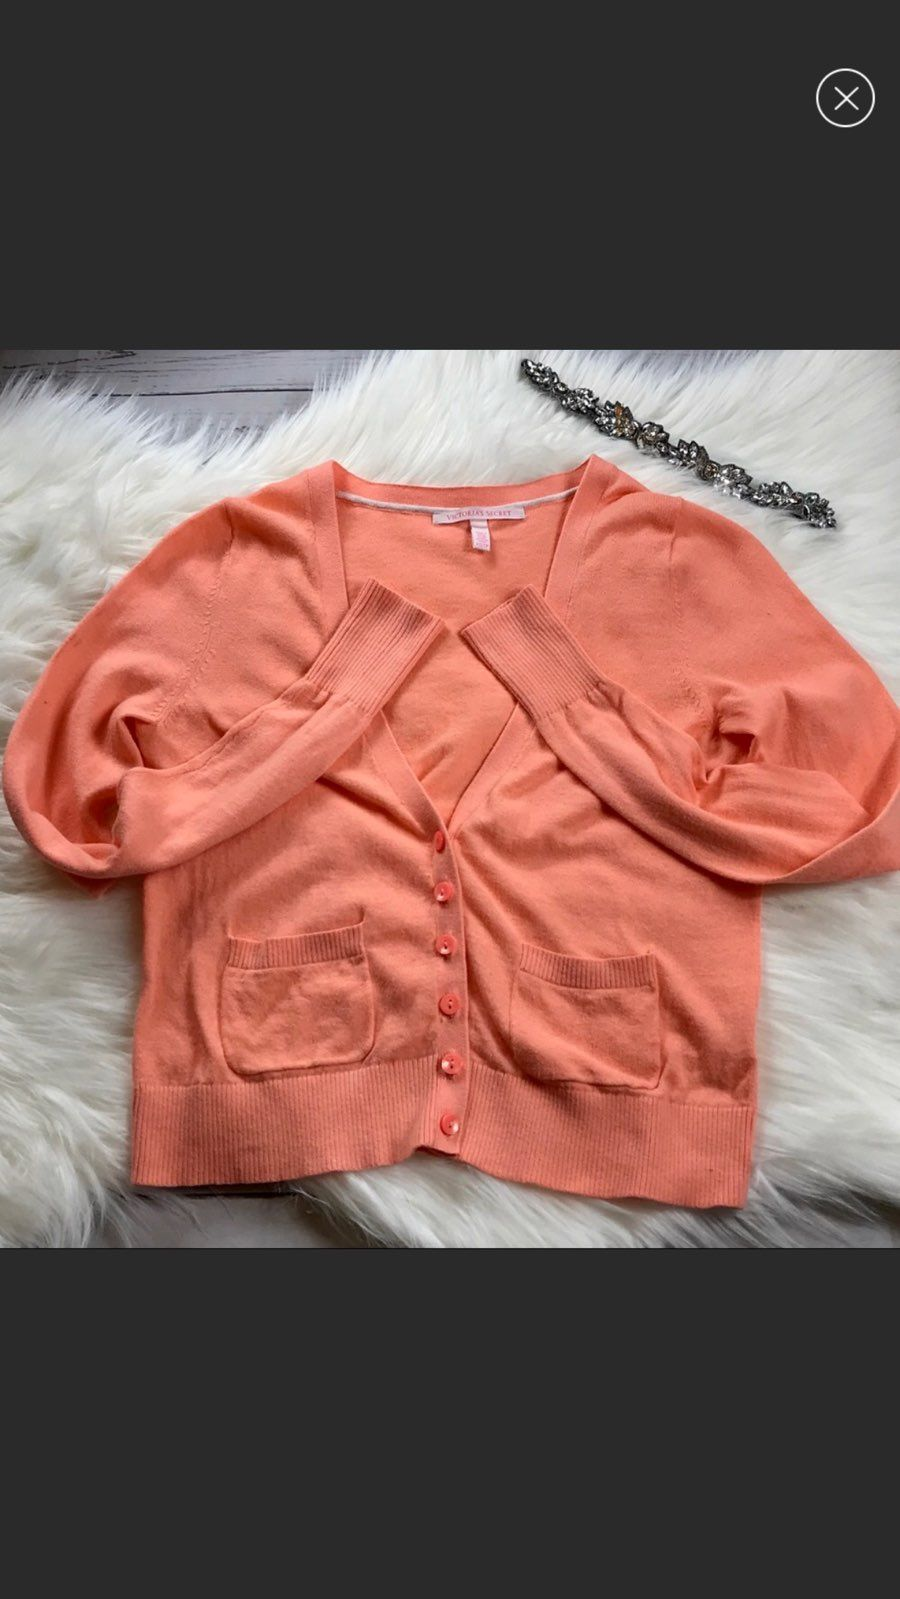 Victoria's Secret Coral Cardigan Sweater - Mercari: BUY & SELL ...